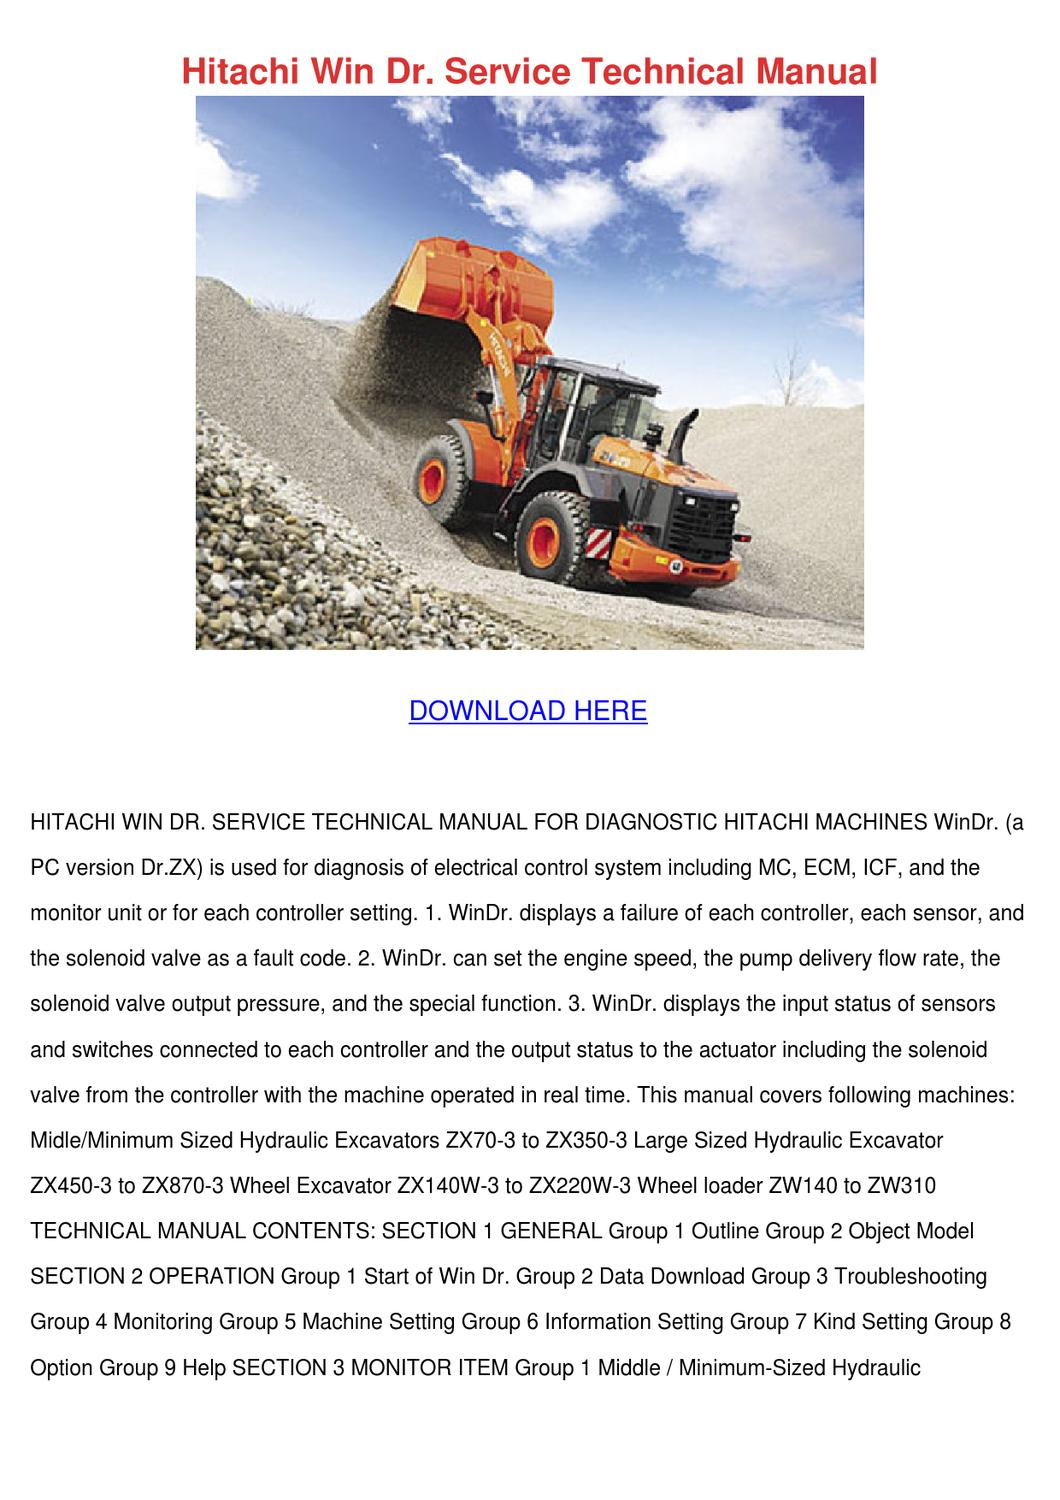 Hitachi Win Dr Service Technical Manual by Marjory Dyle - issuu